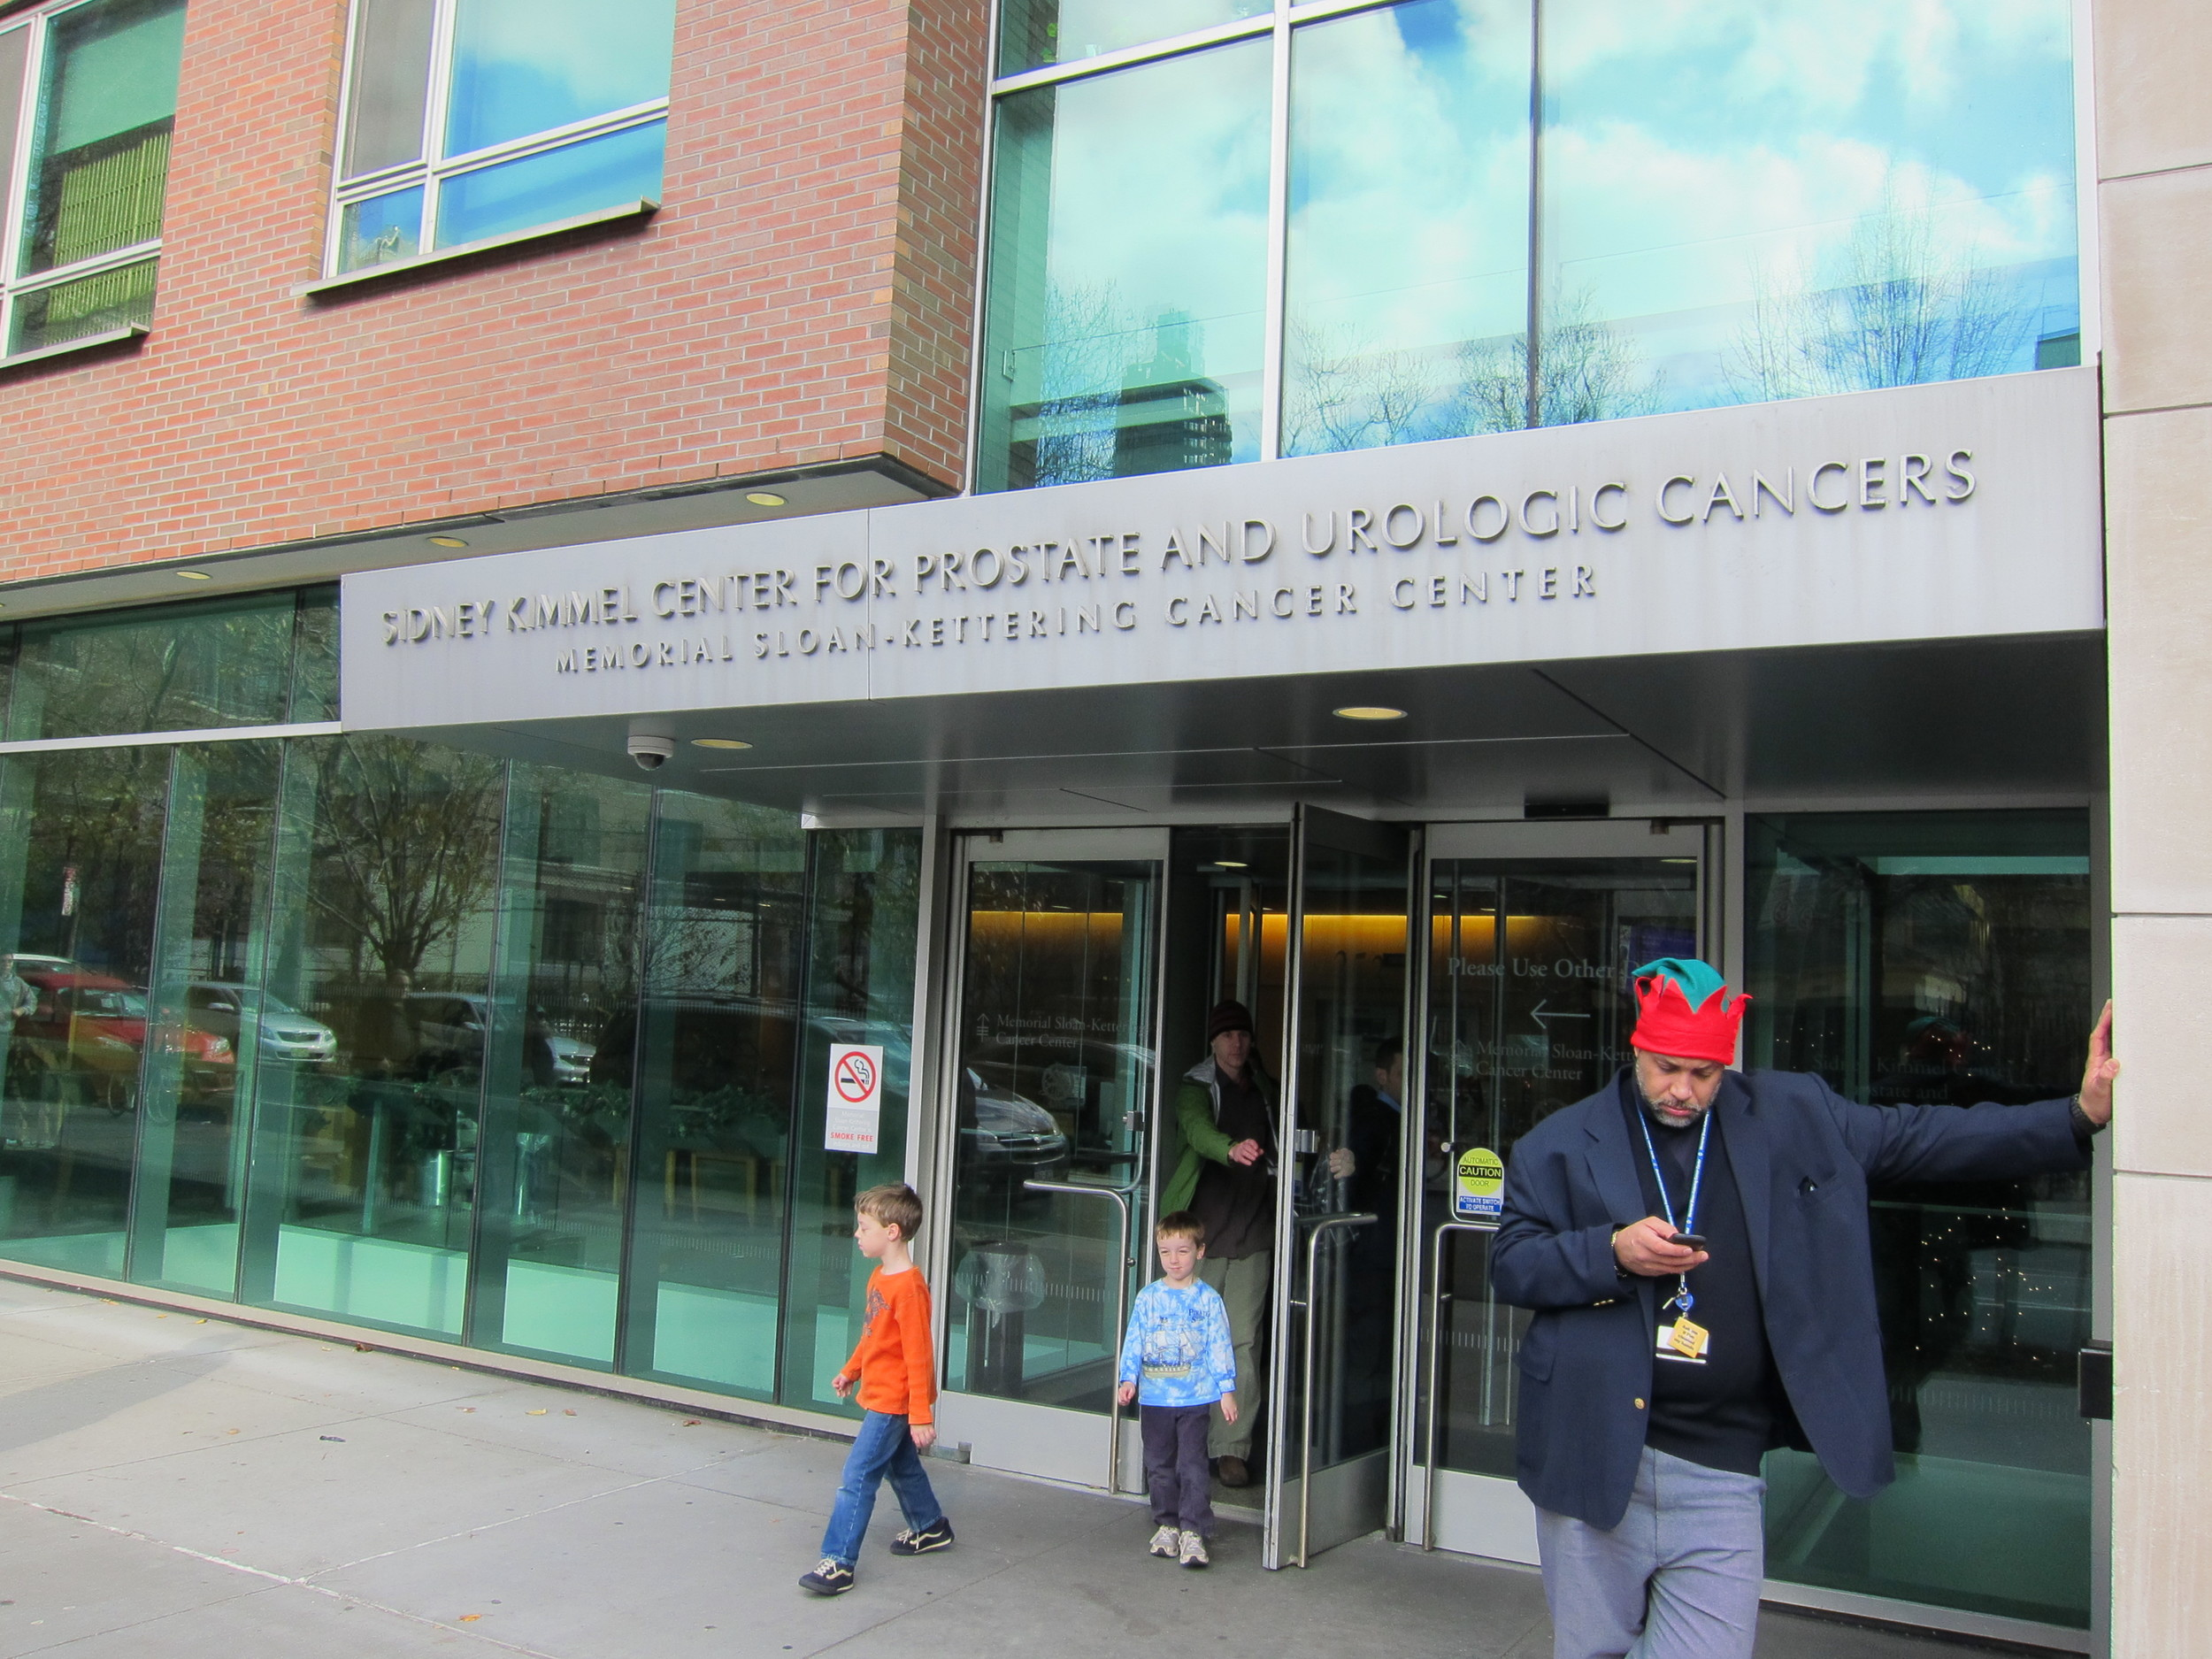 The Sidney Kimmel Center for Prostate and Urological Cancers, part of Memorial Sloan Kettering Cancer Center on E 68th St between 2nd and 3rd Avenues. I've been here a few times. You don't ever want to have to go here.